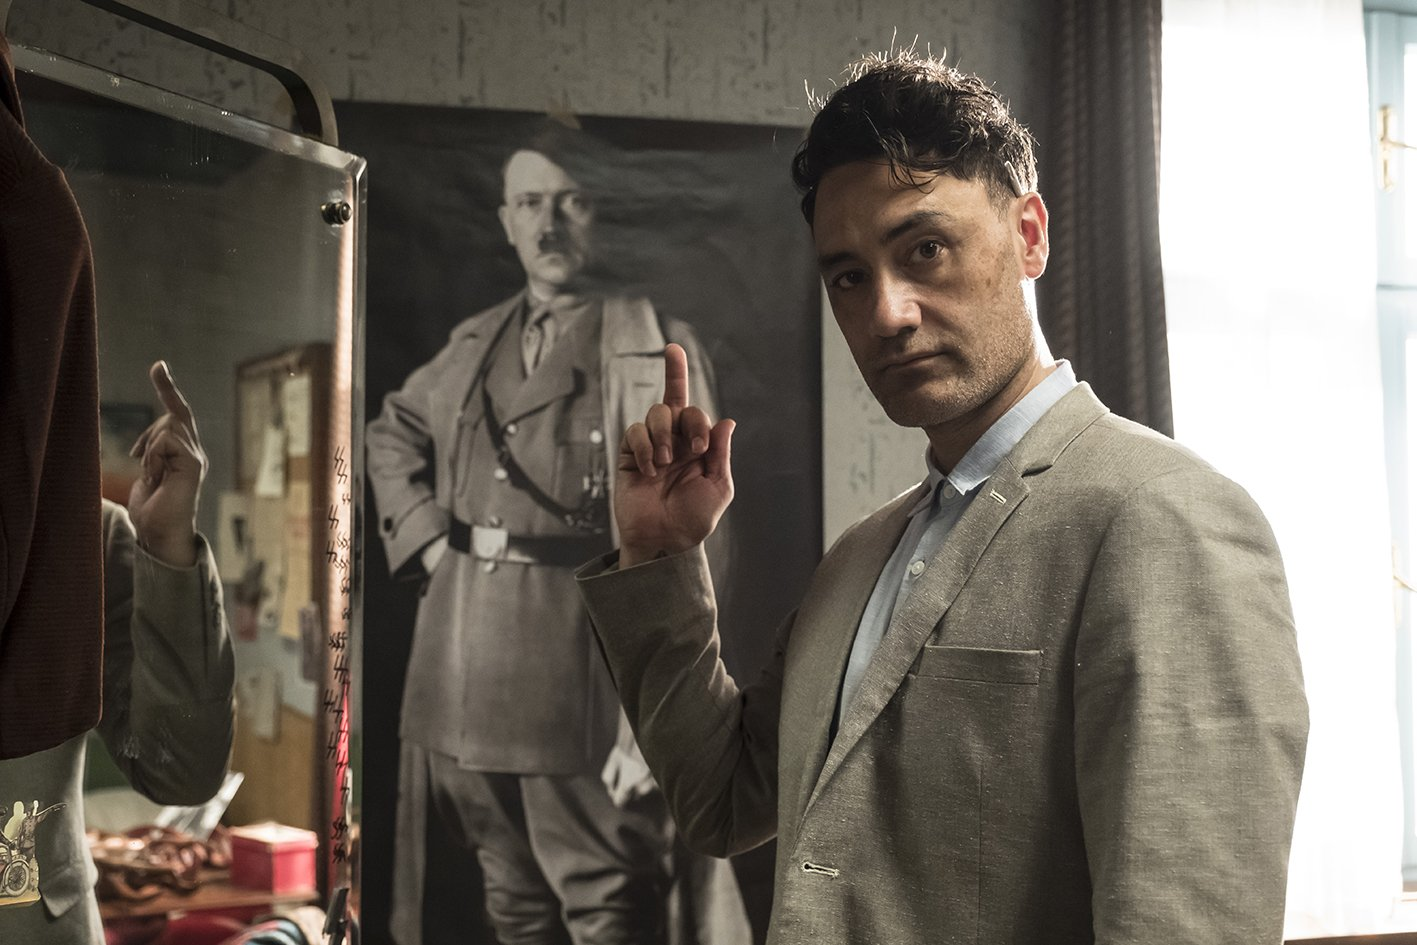 Taika Waititi in Jojo Rabbit (2019)